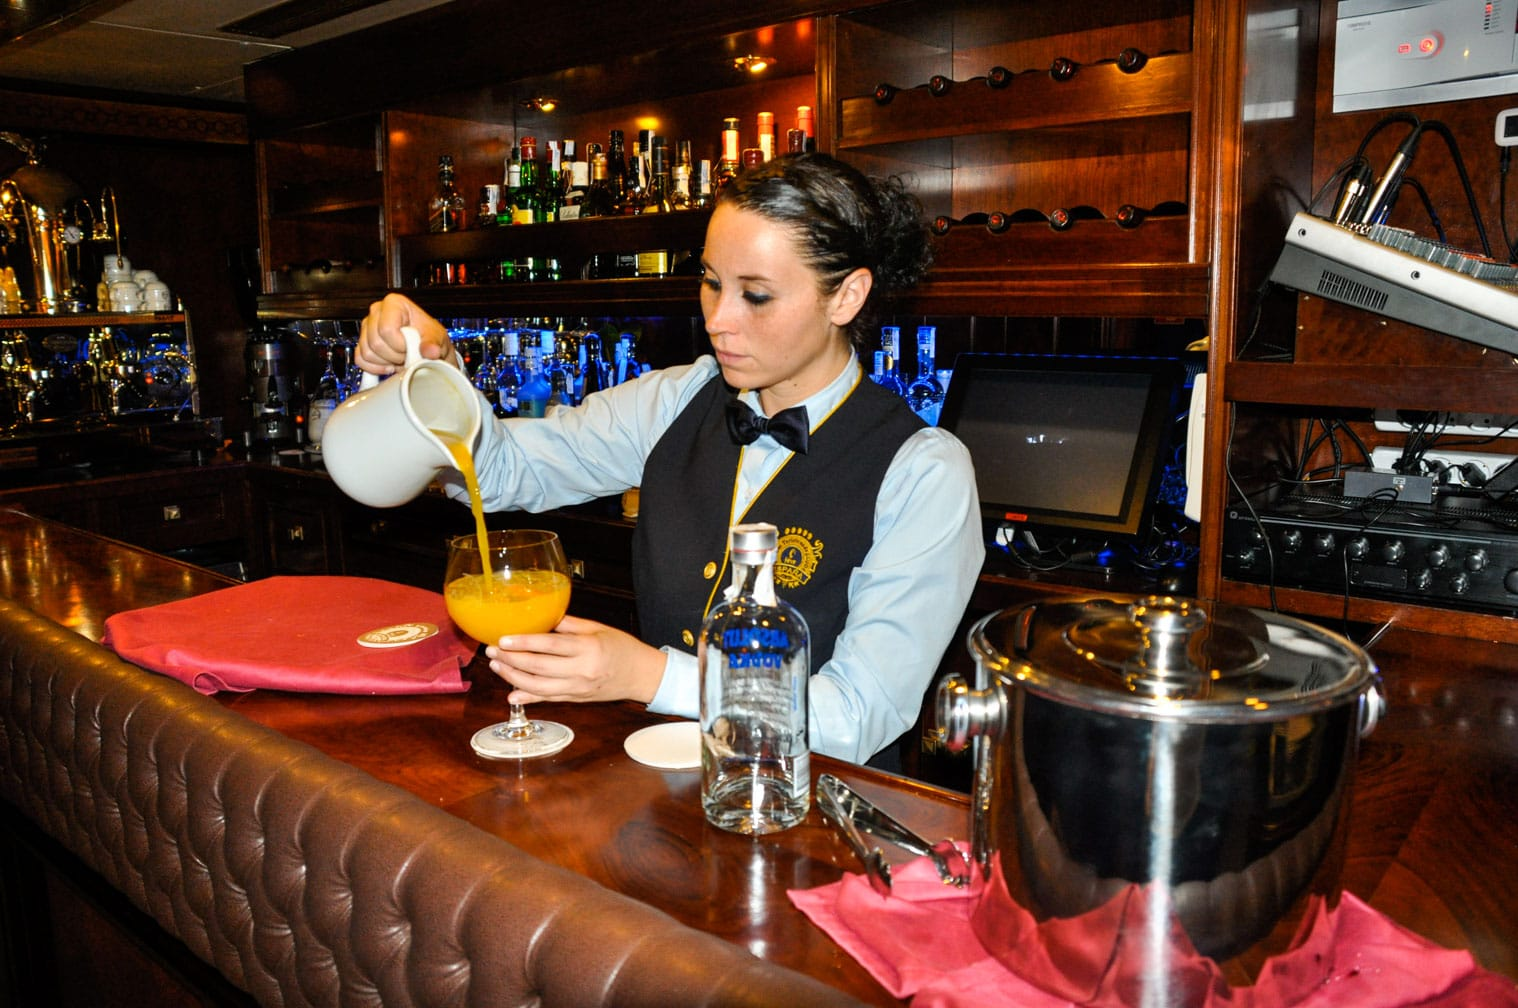 Bartender serving drinks on the Al Andalus train